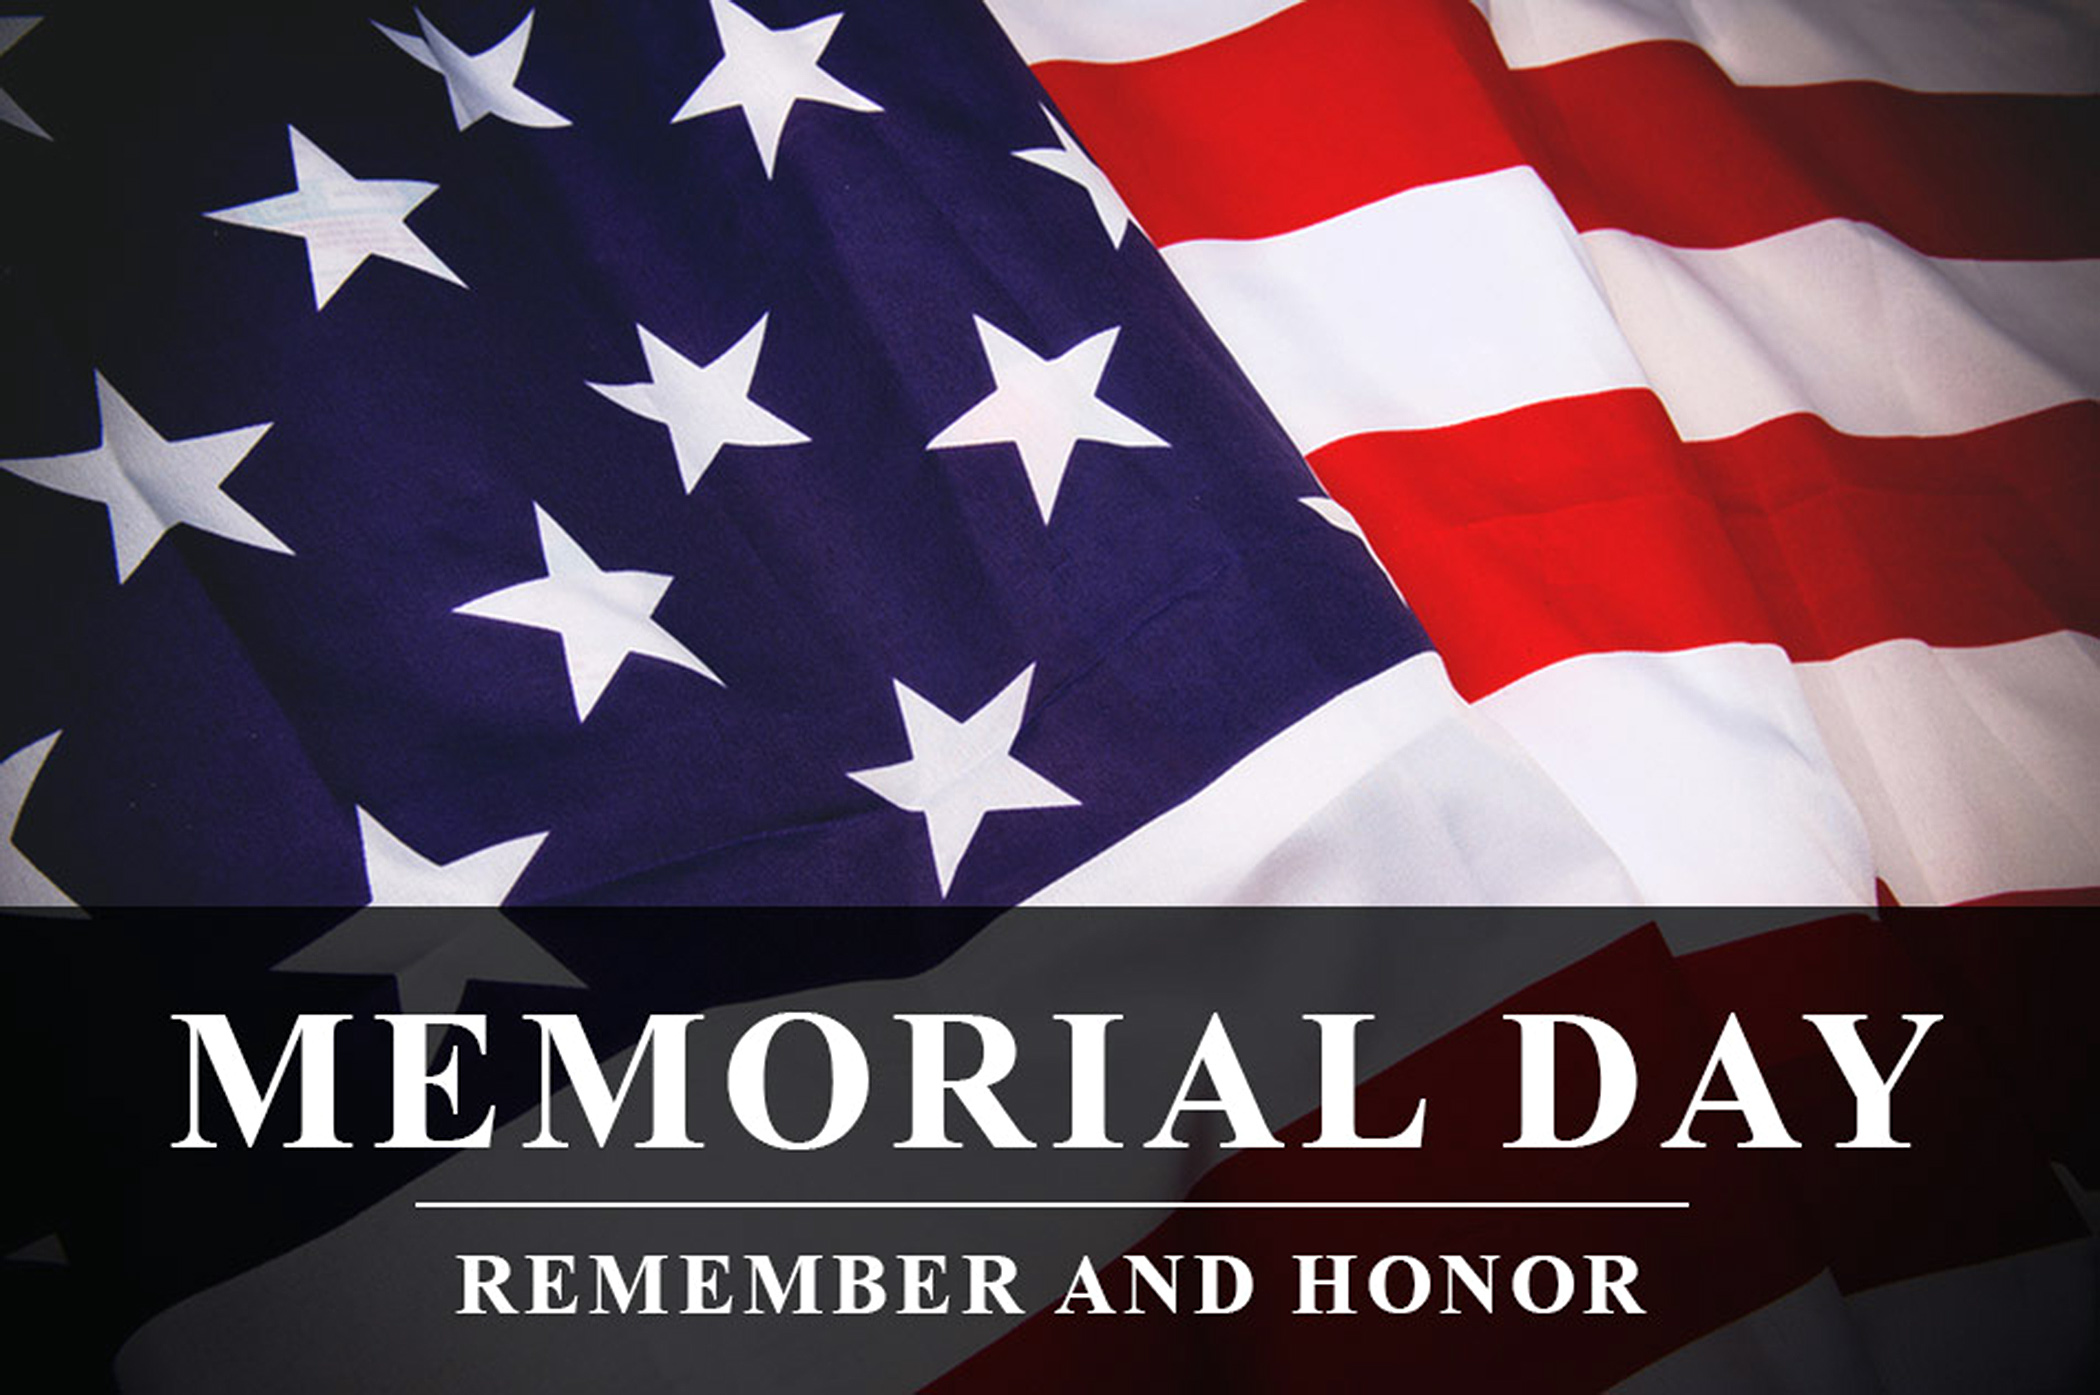 Memorial Day: A time to remember and honor > Joint Base San Antonio > News